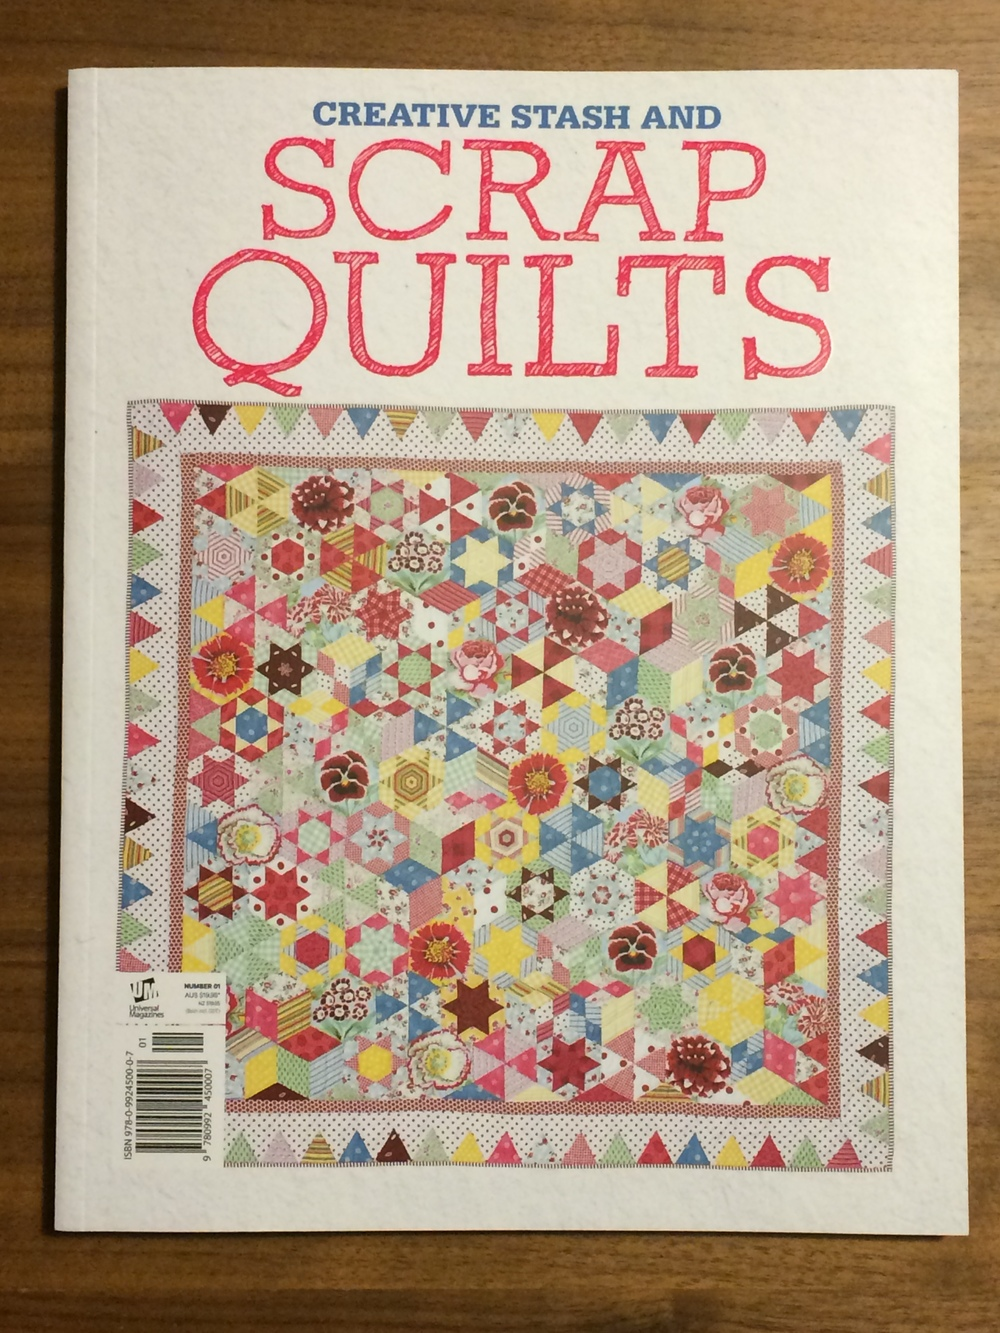 creative-stash-and-scrap-quilts